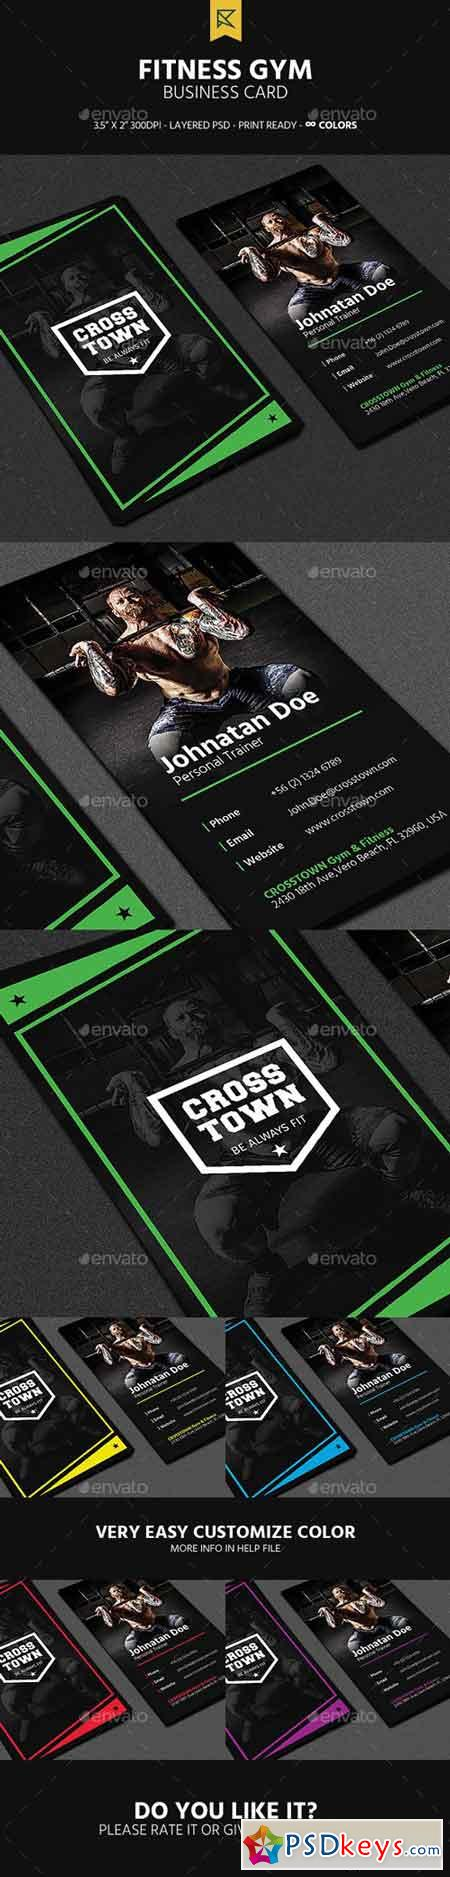 Fitness Gym Business Card 19687903 » Free Download Photoshop ...